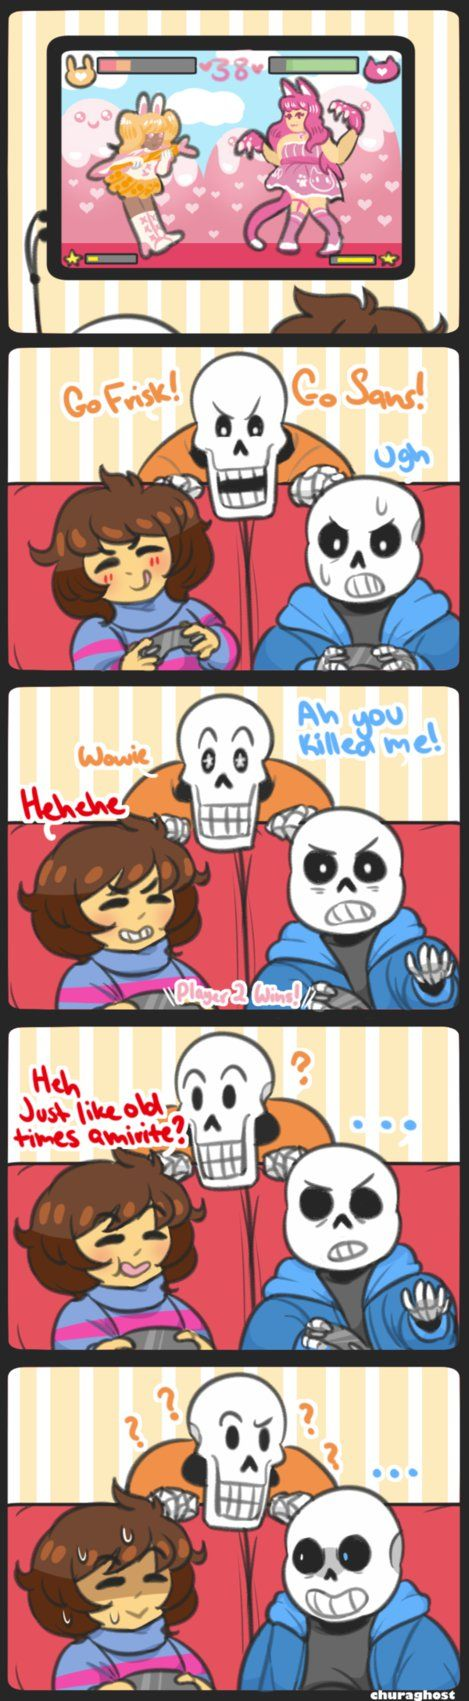 *Megalovania intensifies* WELP, you fucked up Frisk